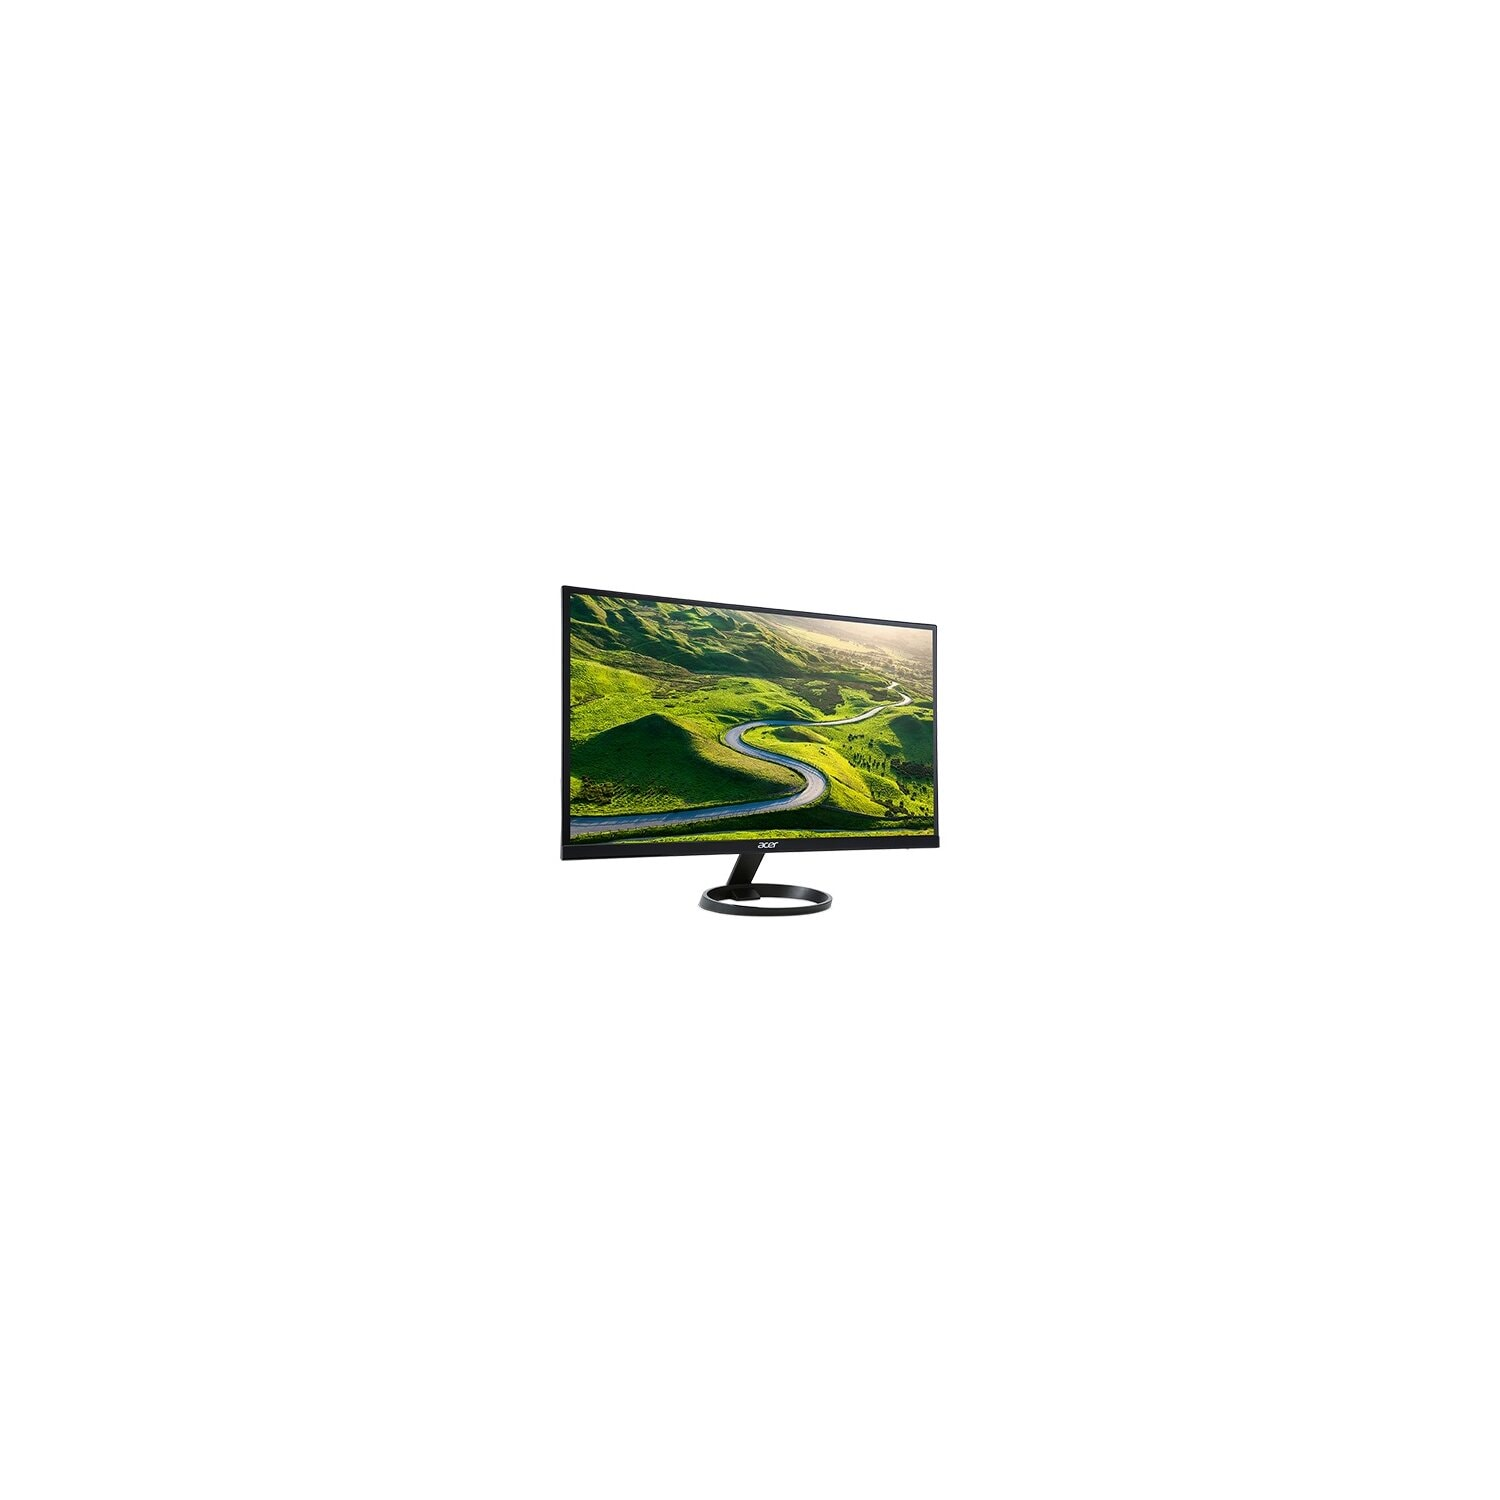 Monitor ACER R271B 27 FHD IPS 1ms